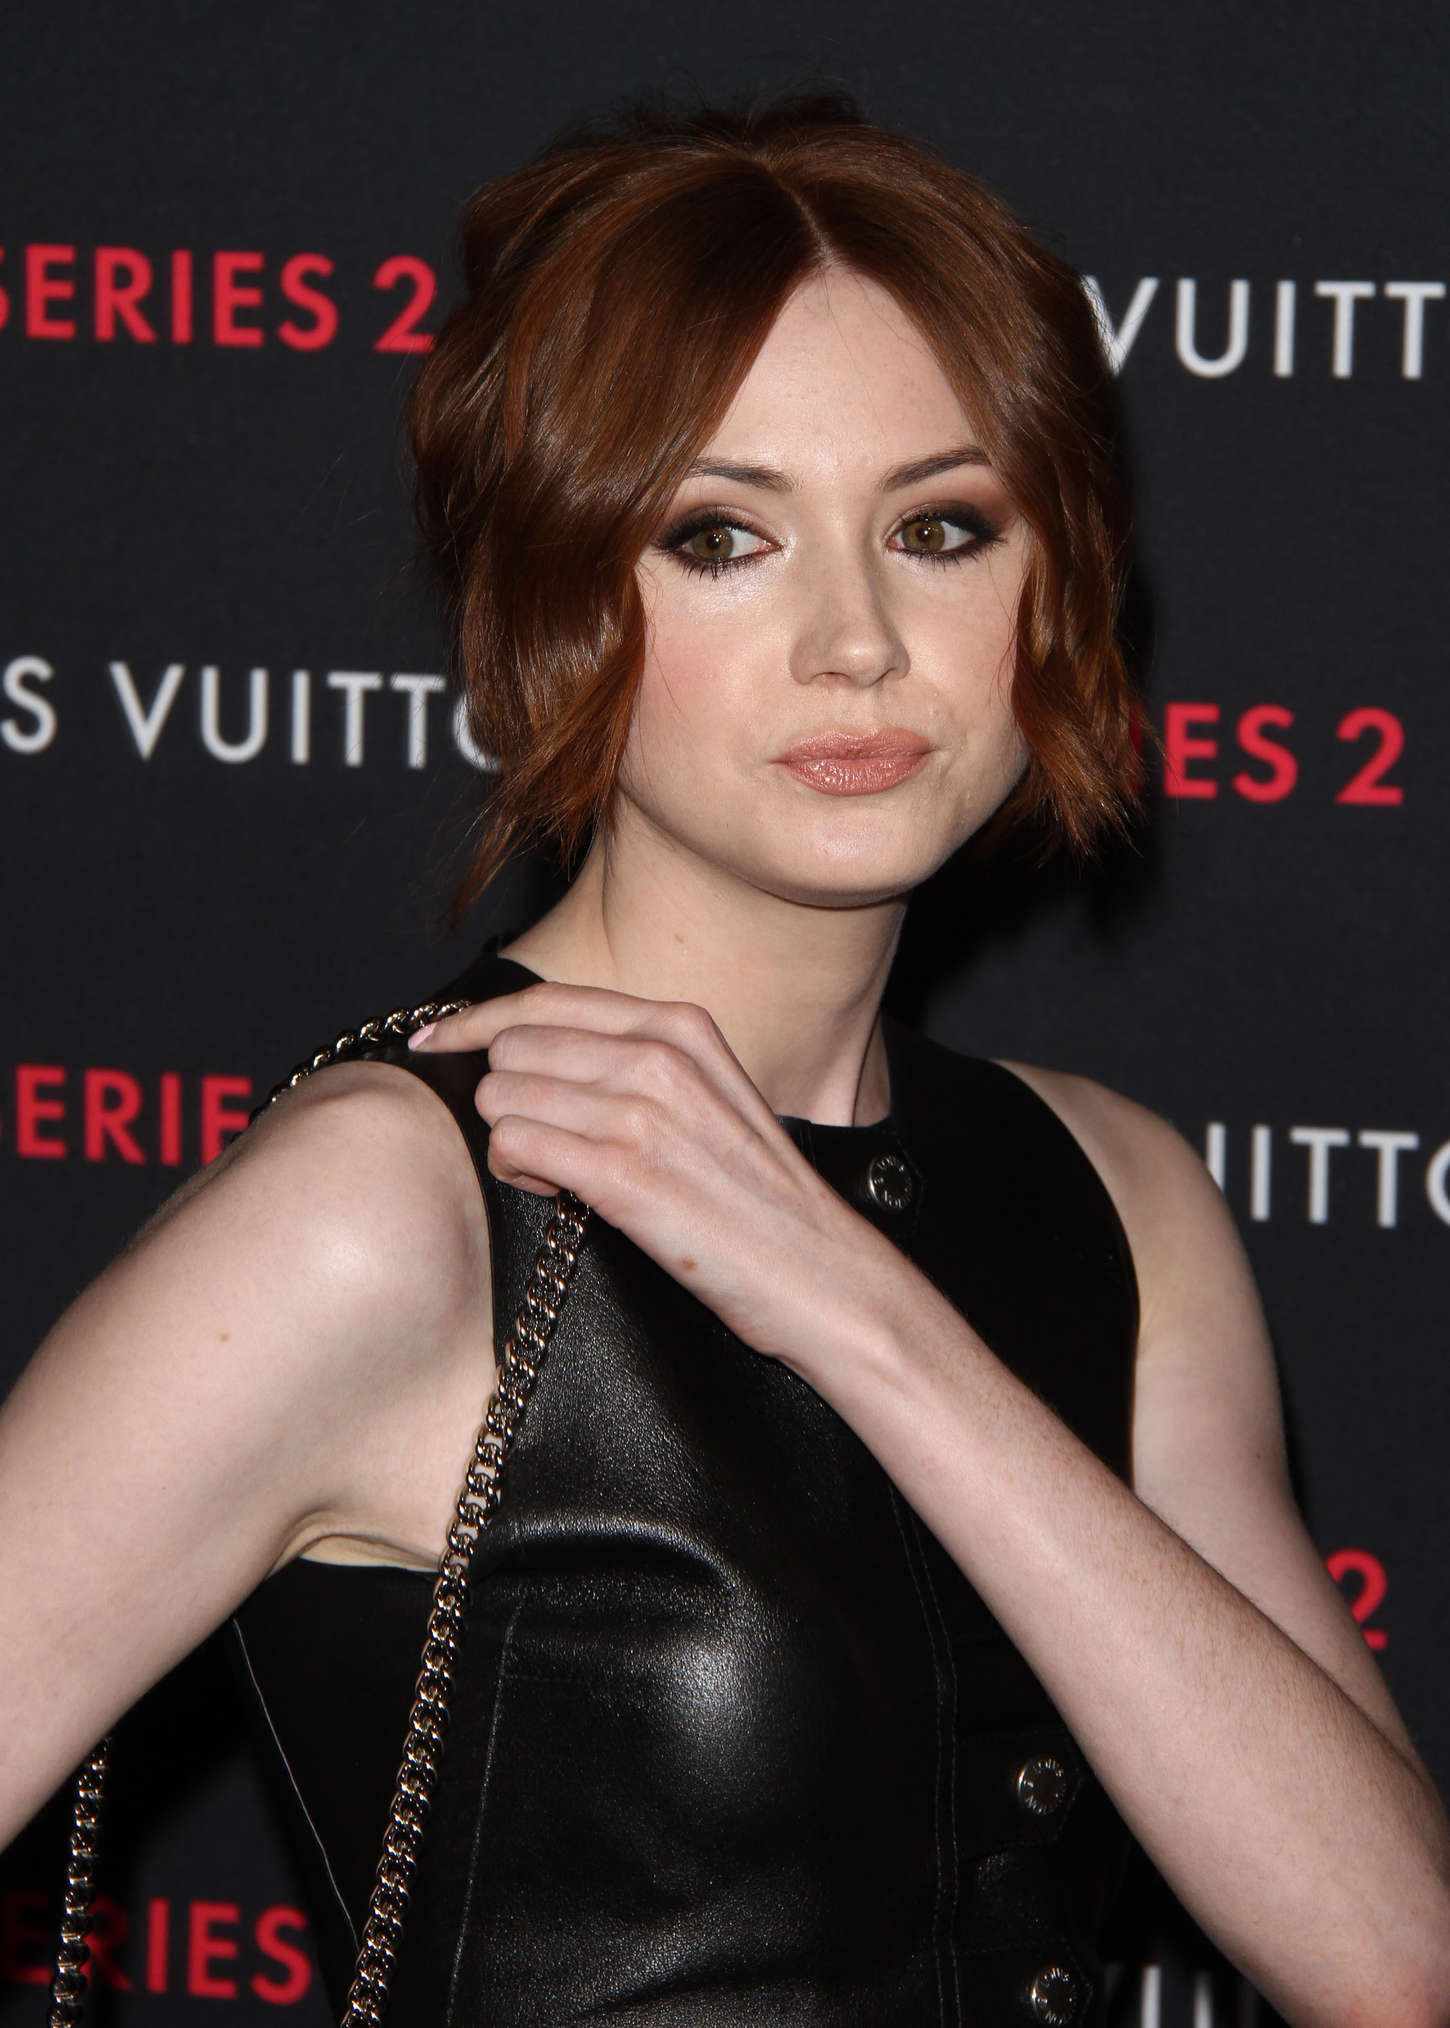 Karen-Gillan:-Louis-Vuitton-Series-2-The